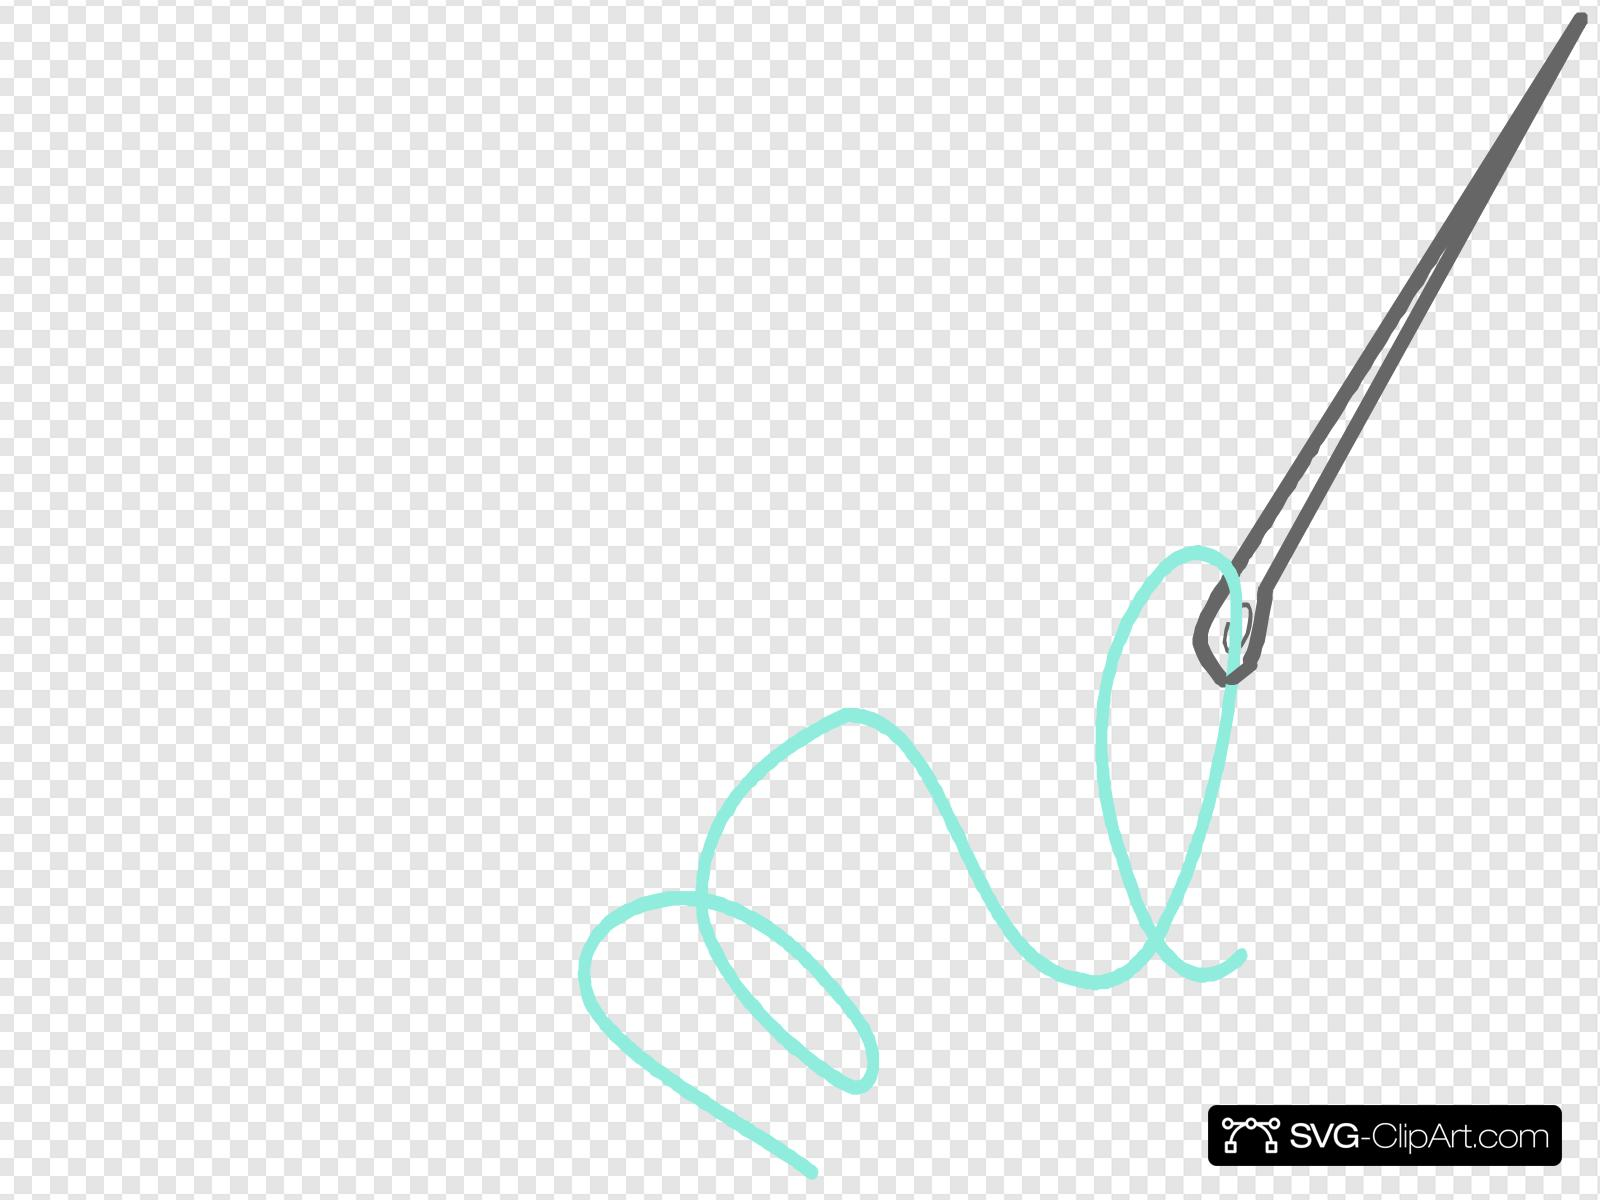 Needle clipart svg. Clip art icon and